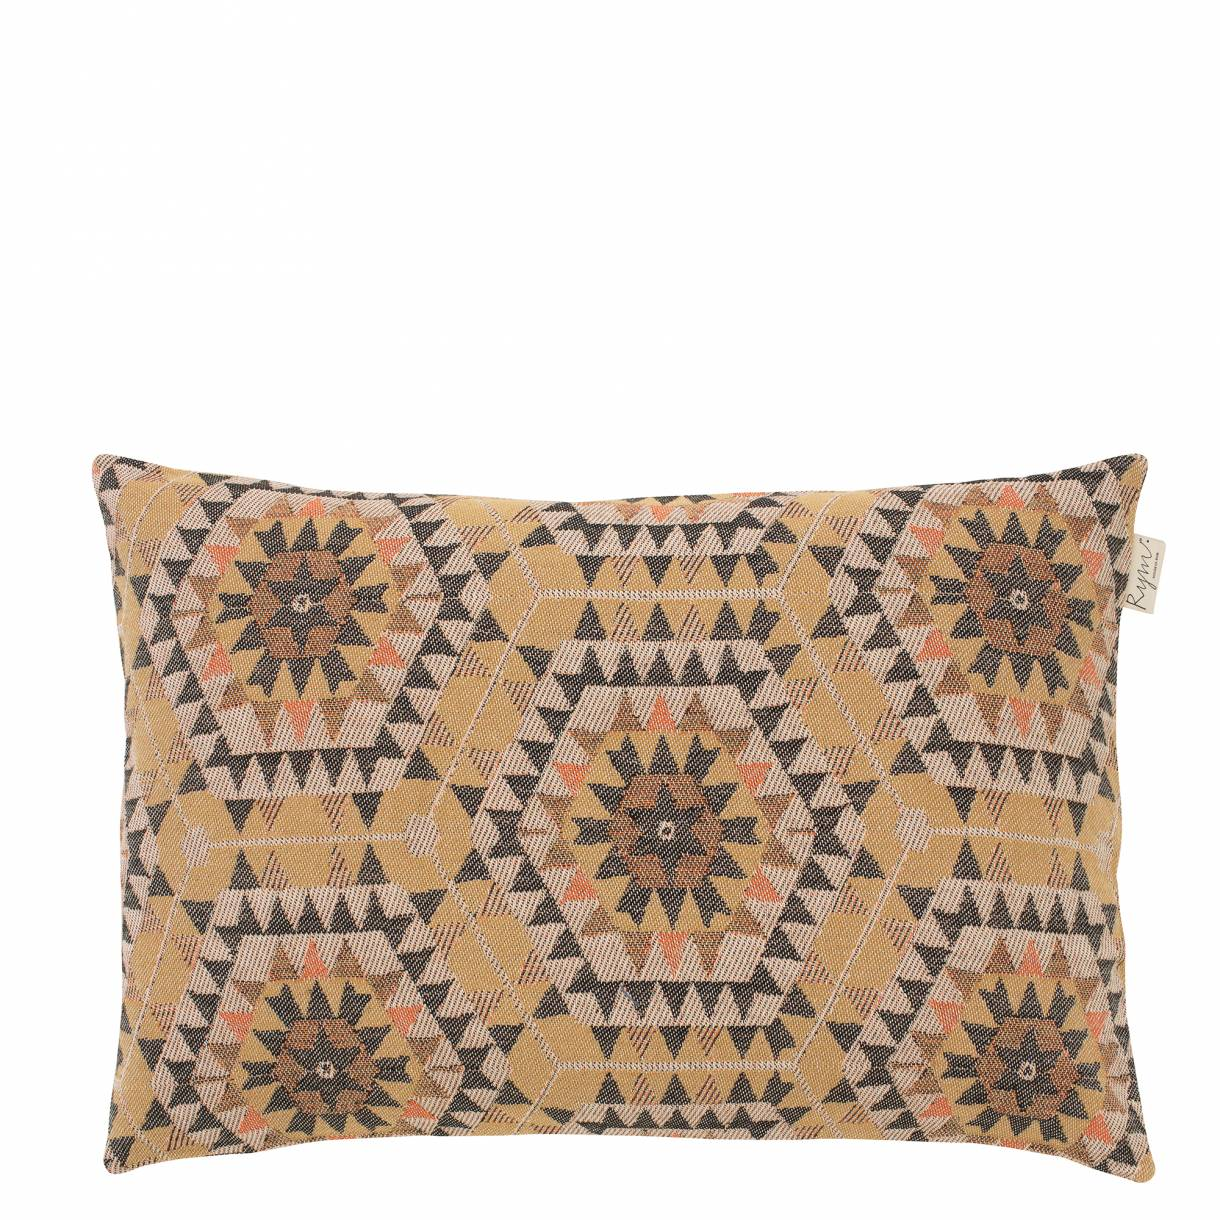 cushion cover heavenly honeycomb peachy sand q4 skandinavisches design. Black Bedroom Furniture Sets. Home Design Ideas